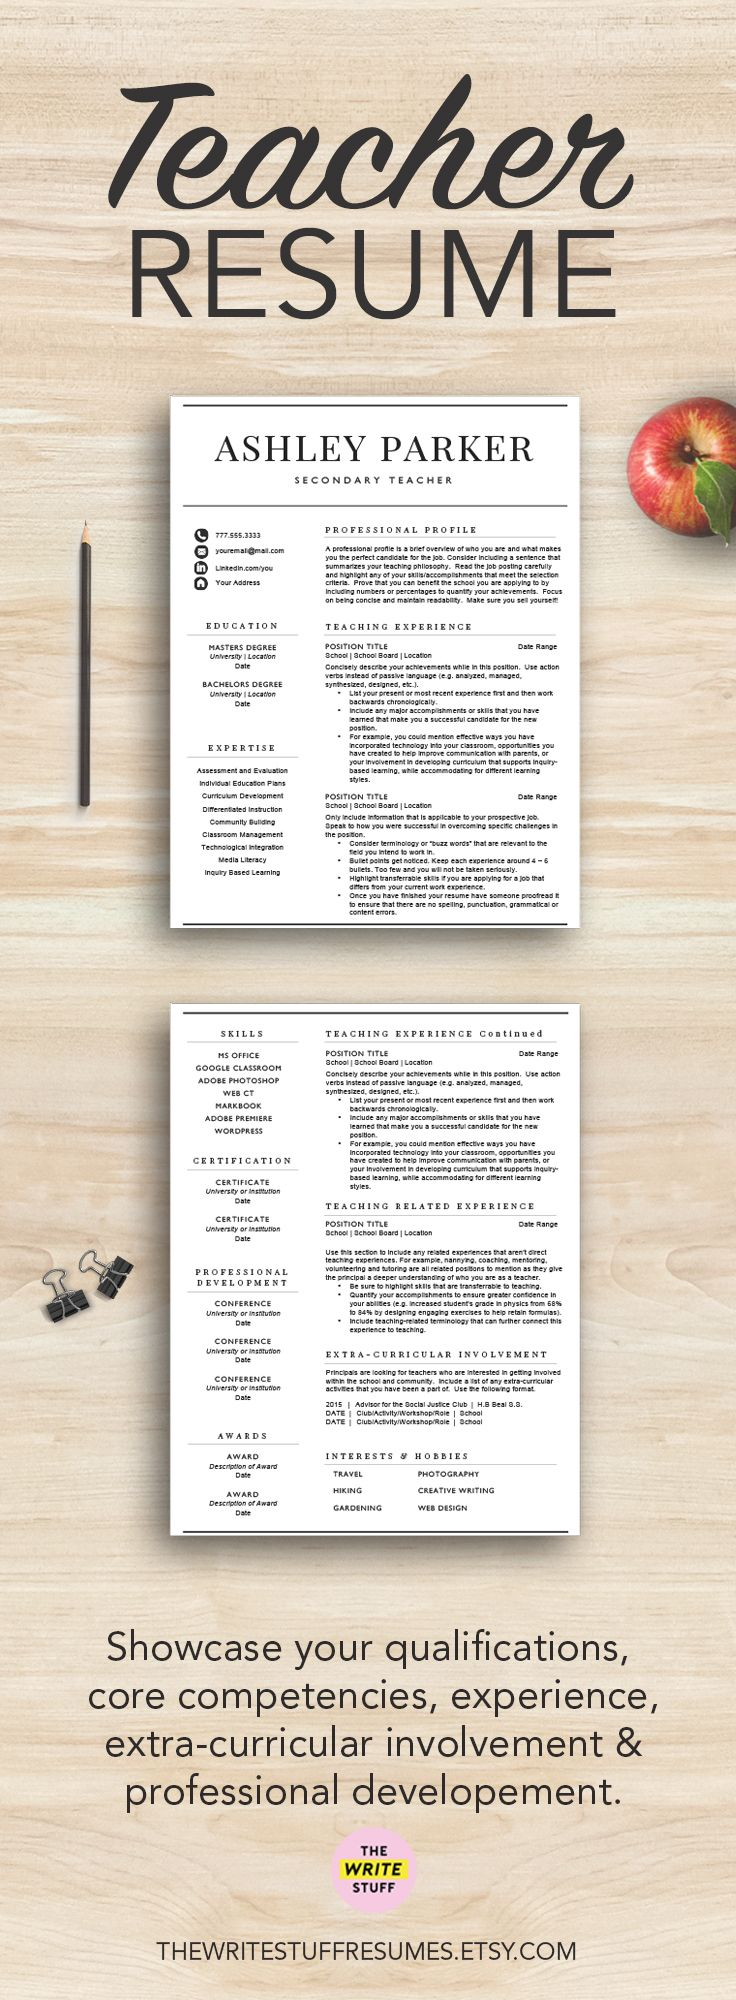 Land your first teaching job with this teacher resume template! The package includes resume writing tips and a cover letter template too!